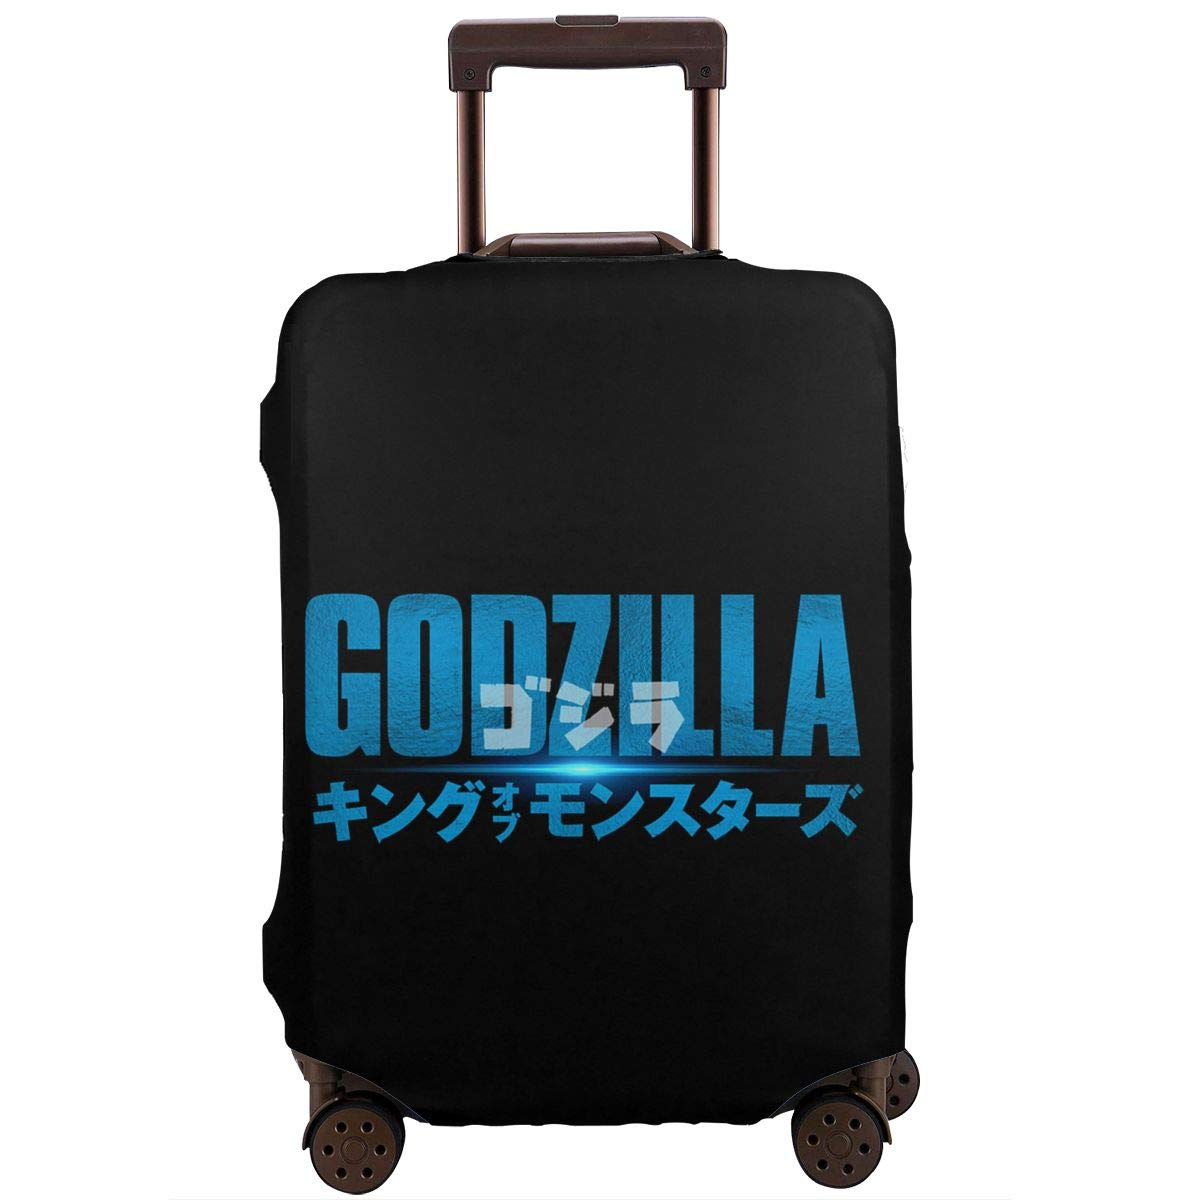 Godzilla111 Elastic Travel Luggage Cover,Double Print Fashion Washable Suitcase Protective Cover Fit For 18-32 Inch Luggage